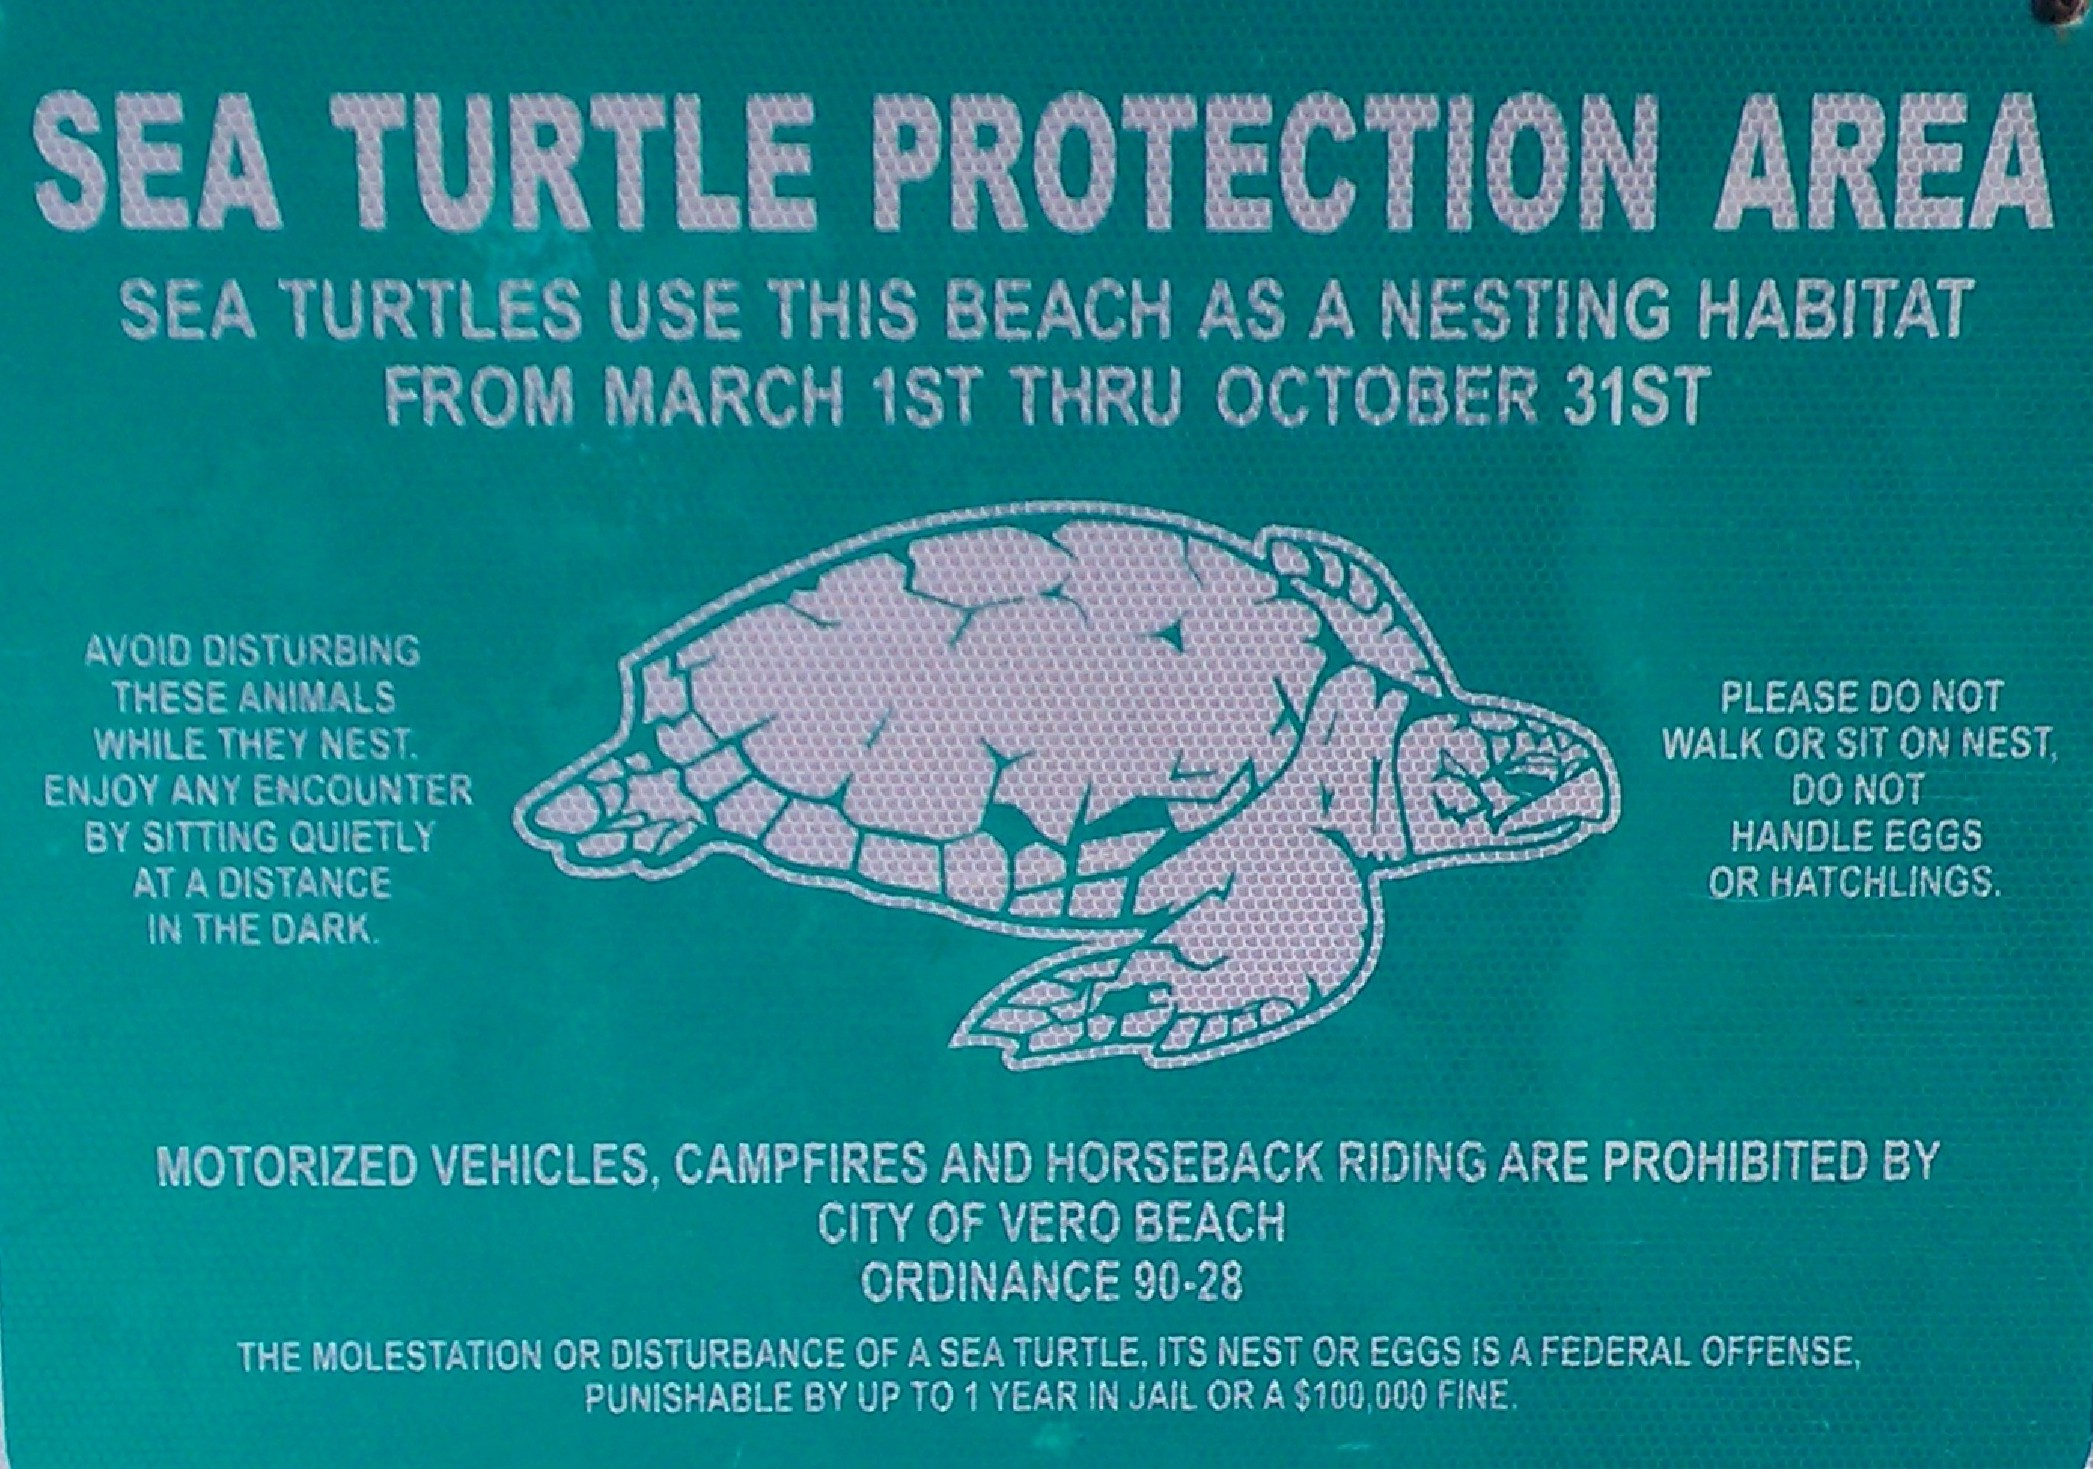 Turtles protection